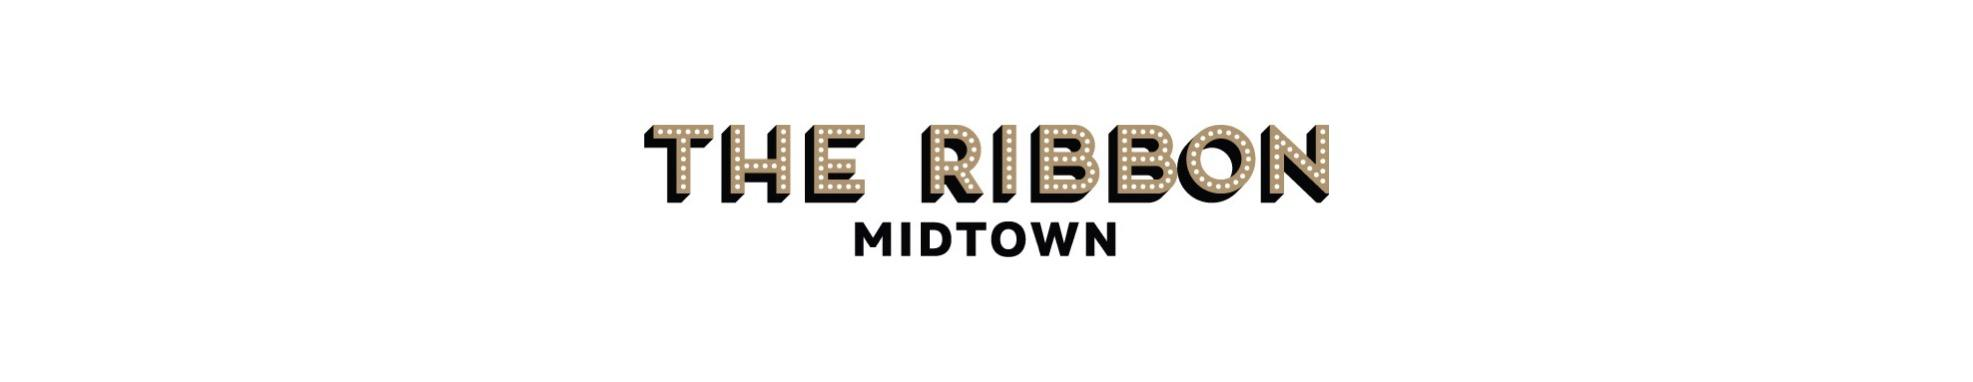 THE RIBBON RESTAURANT RESERVATION - PRE-FIX MENU & BLUE NIGHTCLUB ENTRY